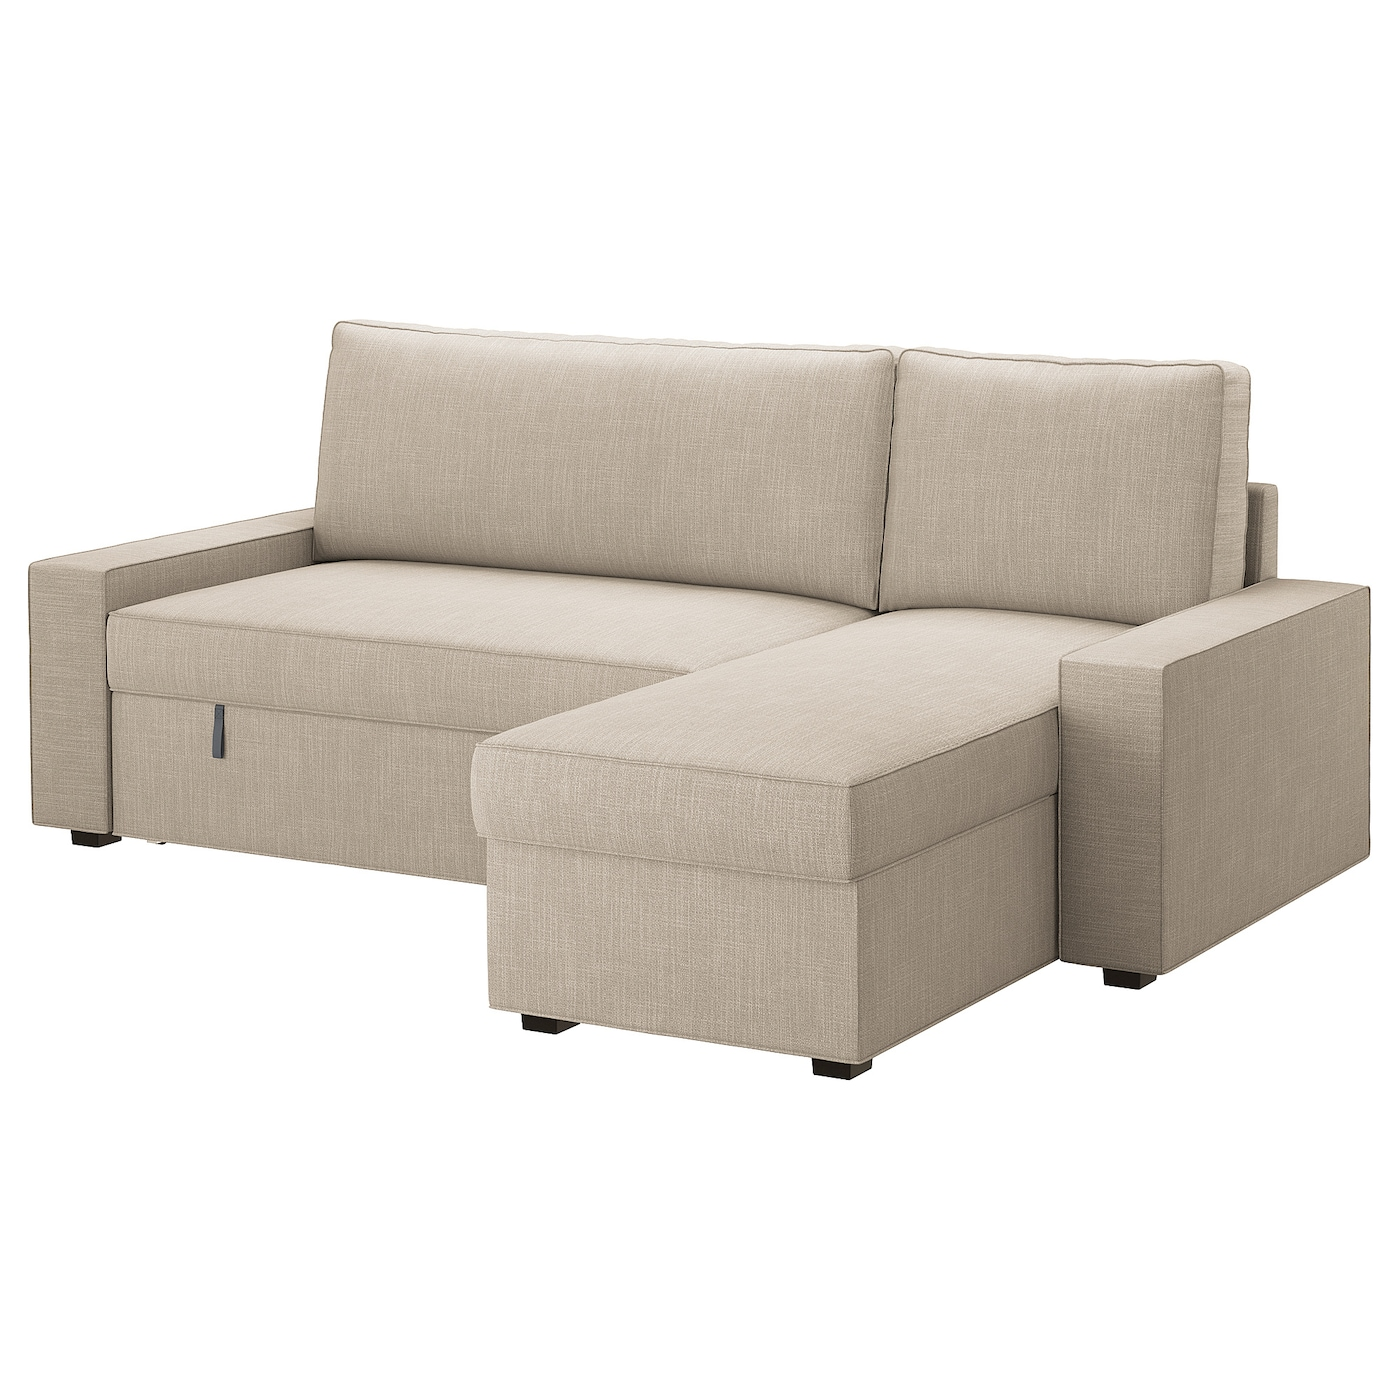 Vilasund sofa bed with chaise longue hillared beige ikea for Bed chaise longue